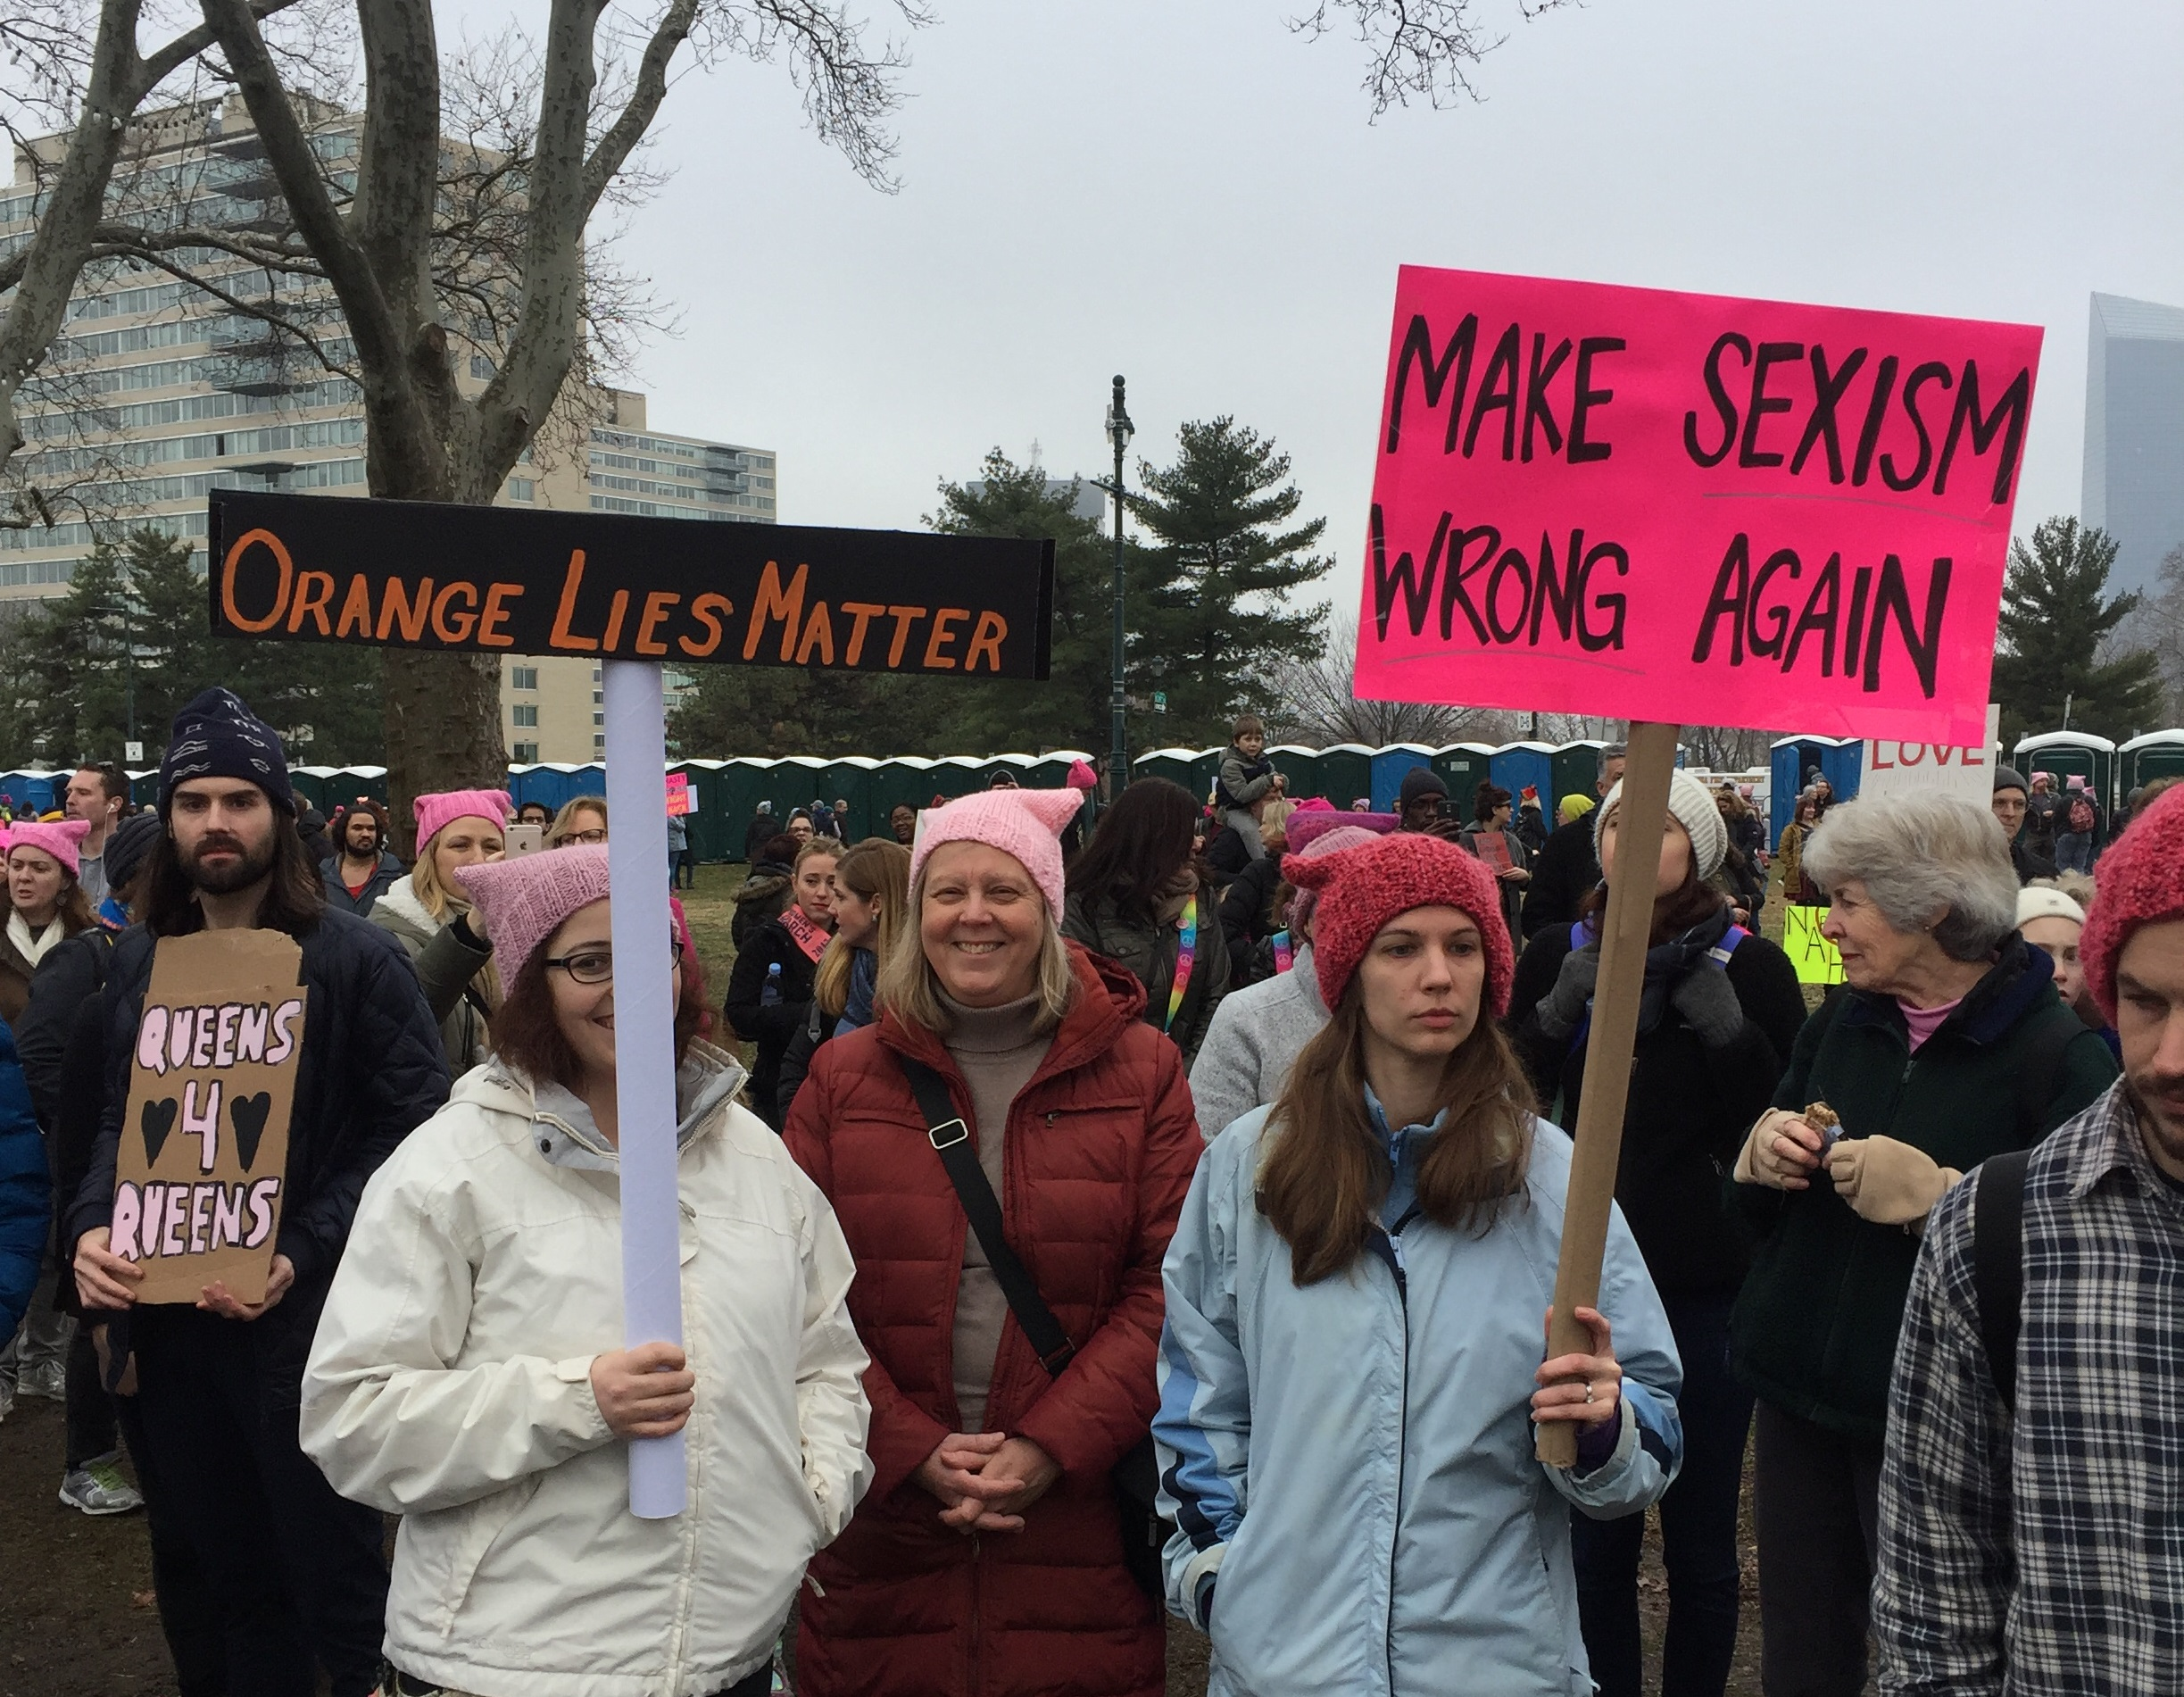 Make Sexism Wrong Again, Women's March, Philadelphia, January 21, 2018 - Photo by Robin Renée